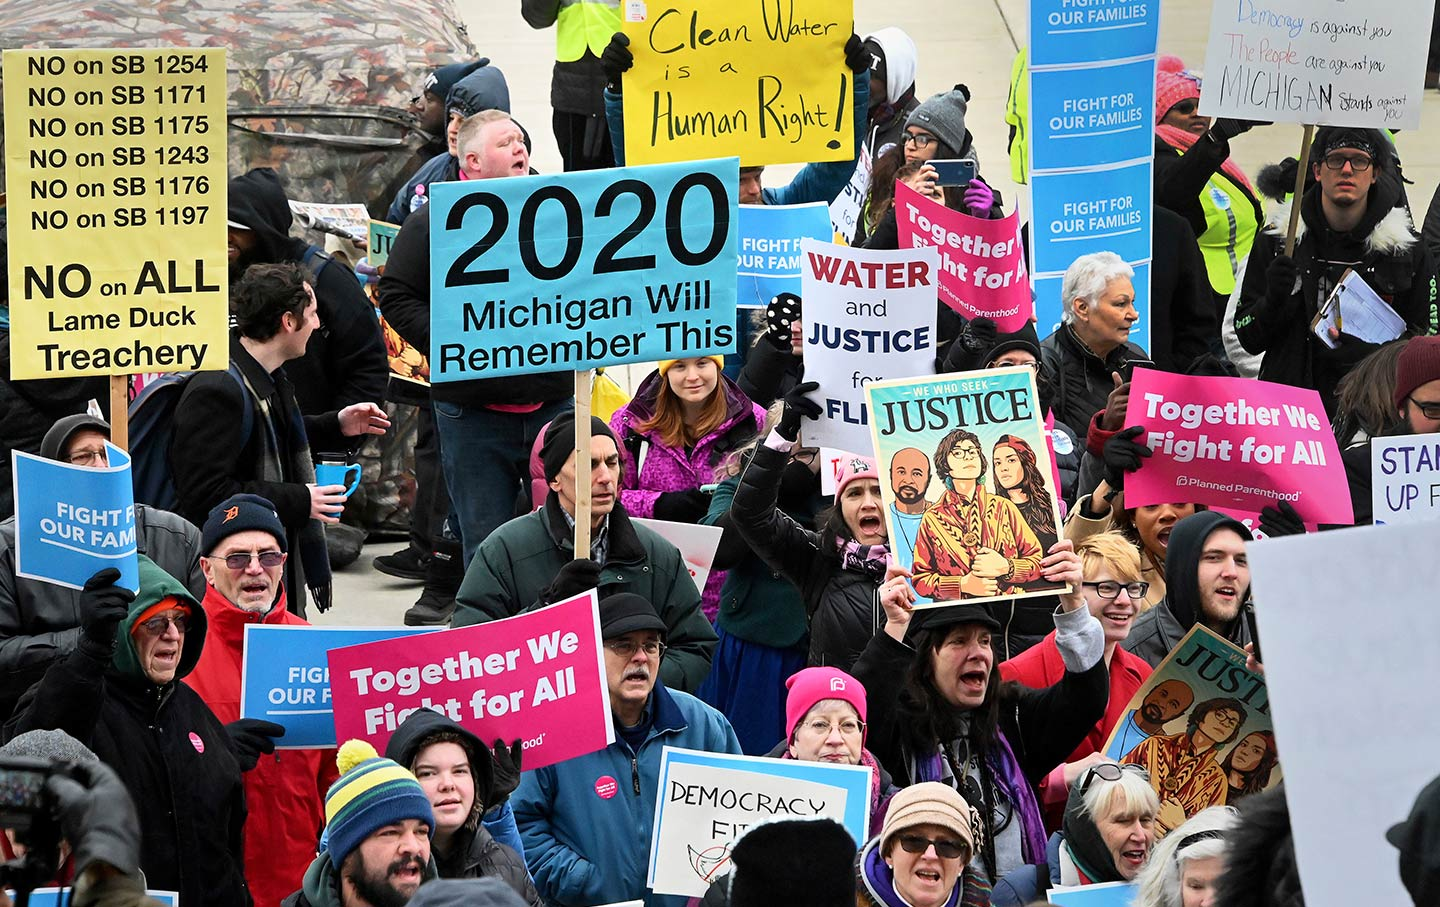 Michigan lame duck protests